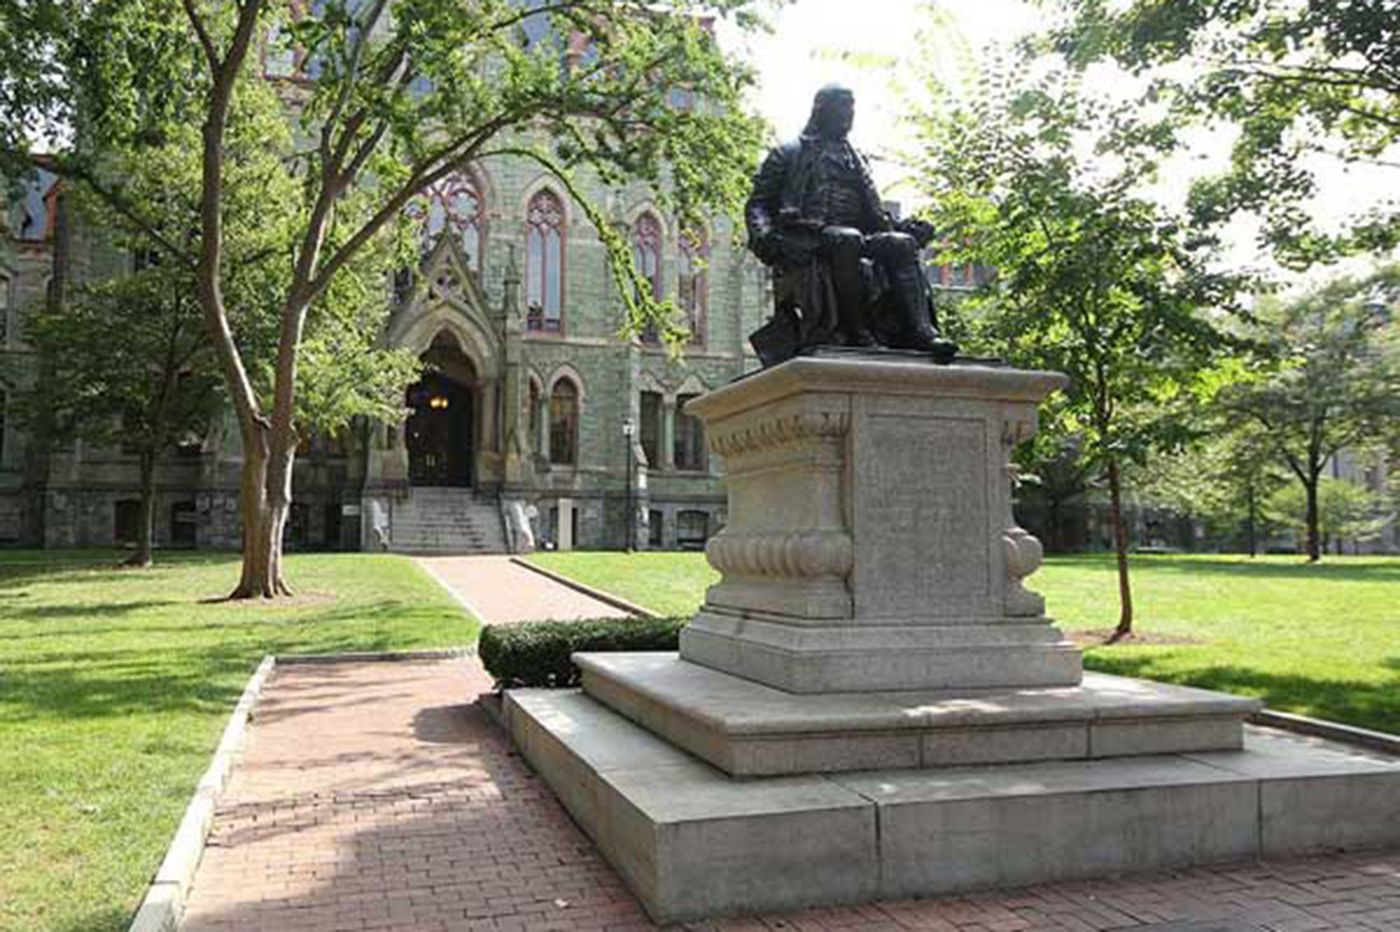 Penn is the latest university to drop the SAT requirement for admission amid coronavirus